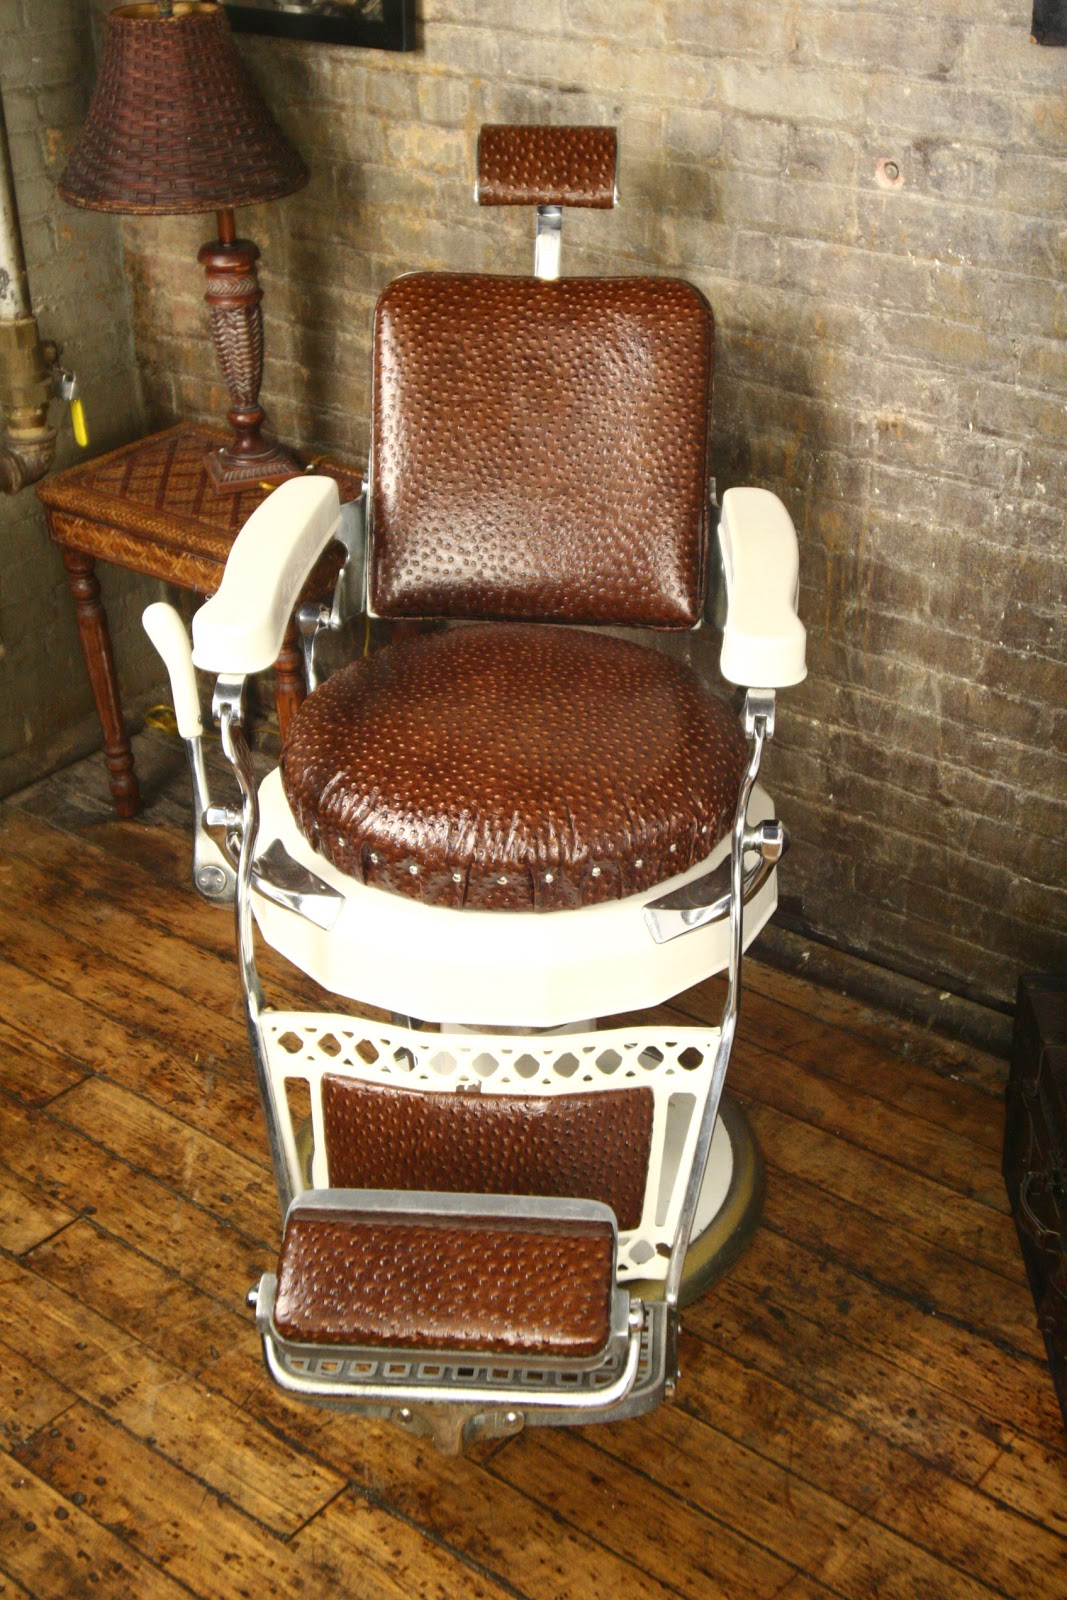 Keller Barber Chair Diy Covers Pillowcase Antique Chairs Furniture